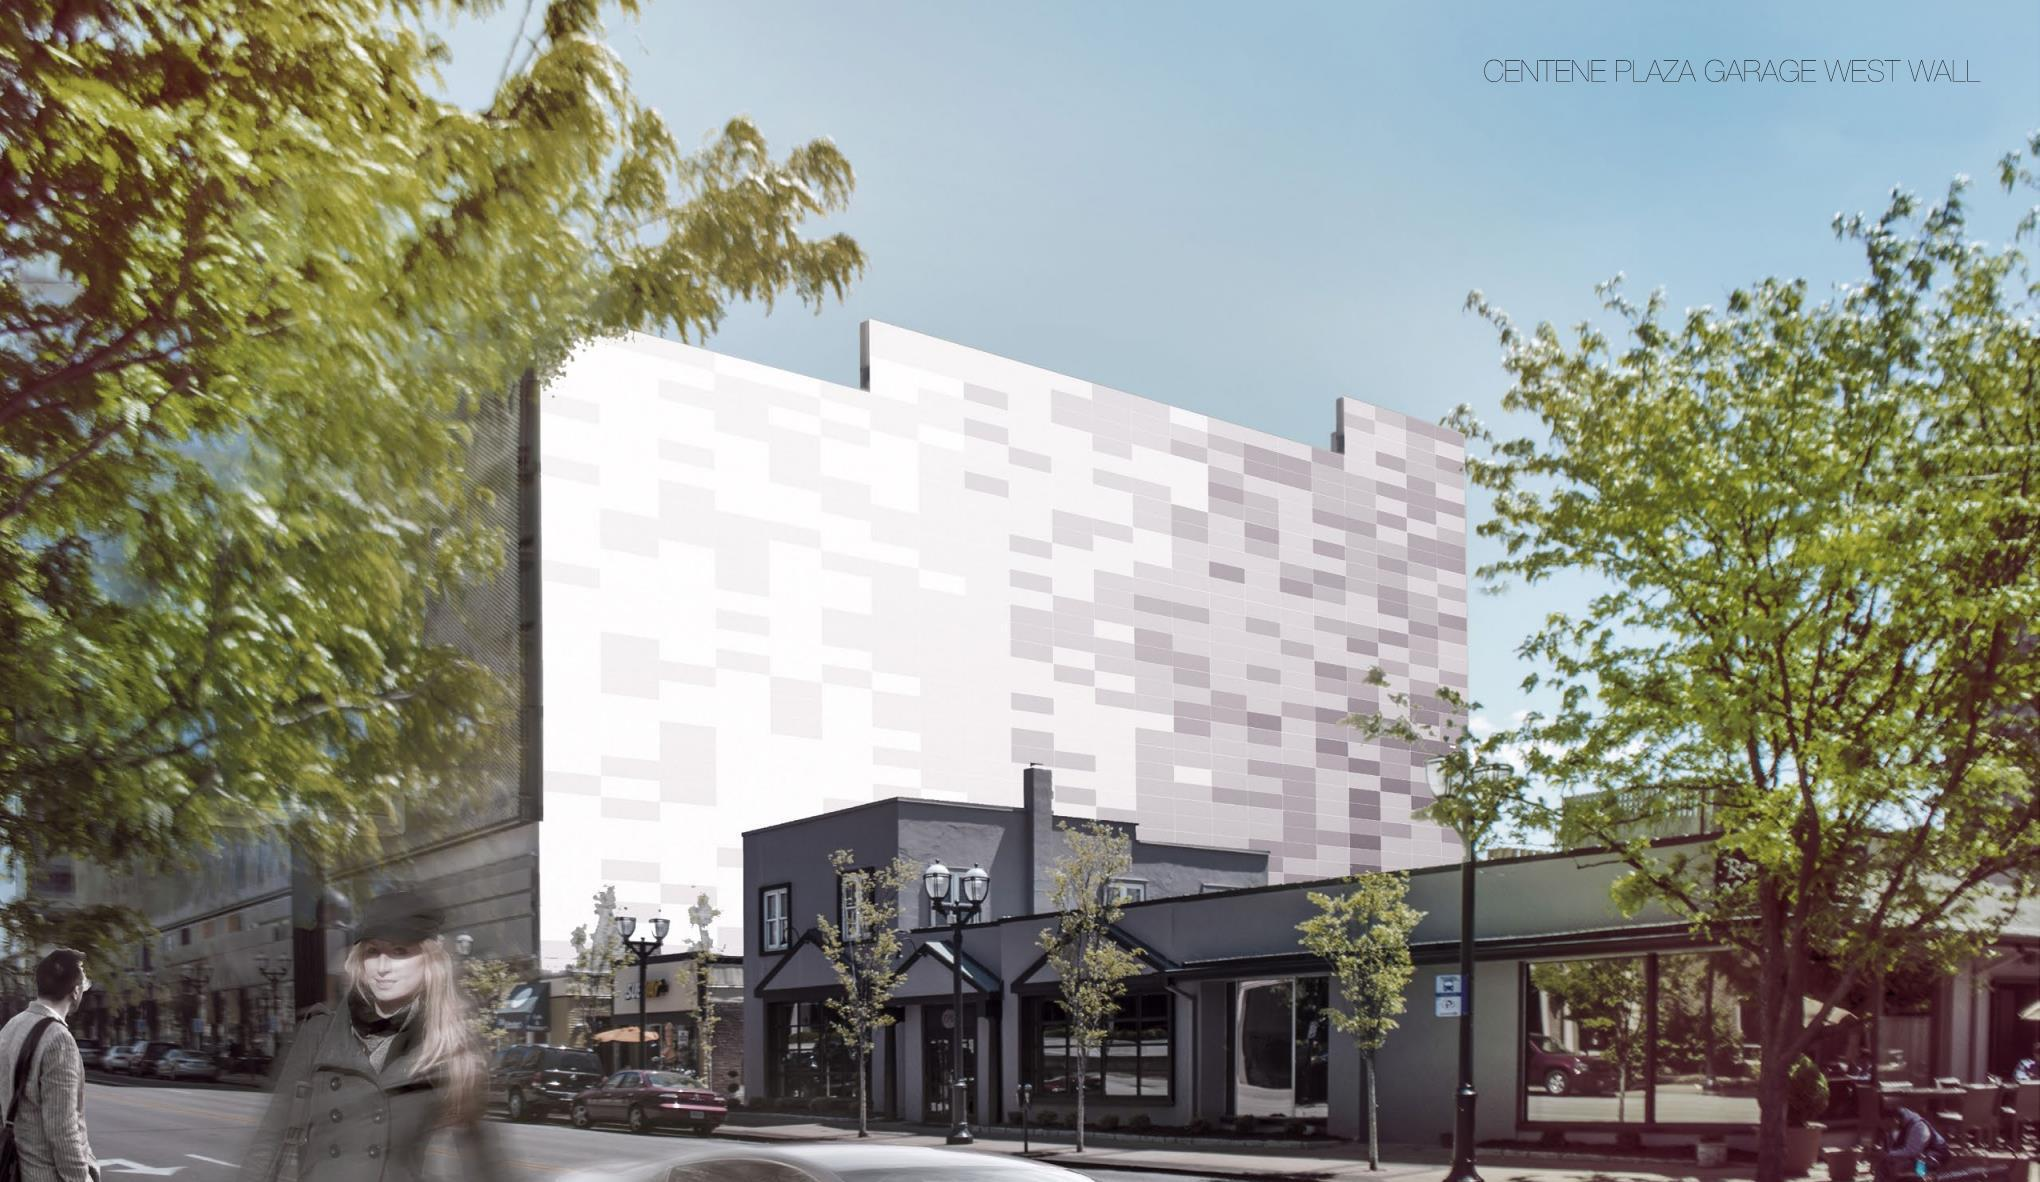 New Mural Proposed for Centene Plaza Garage